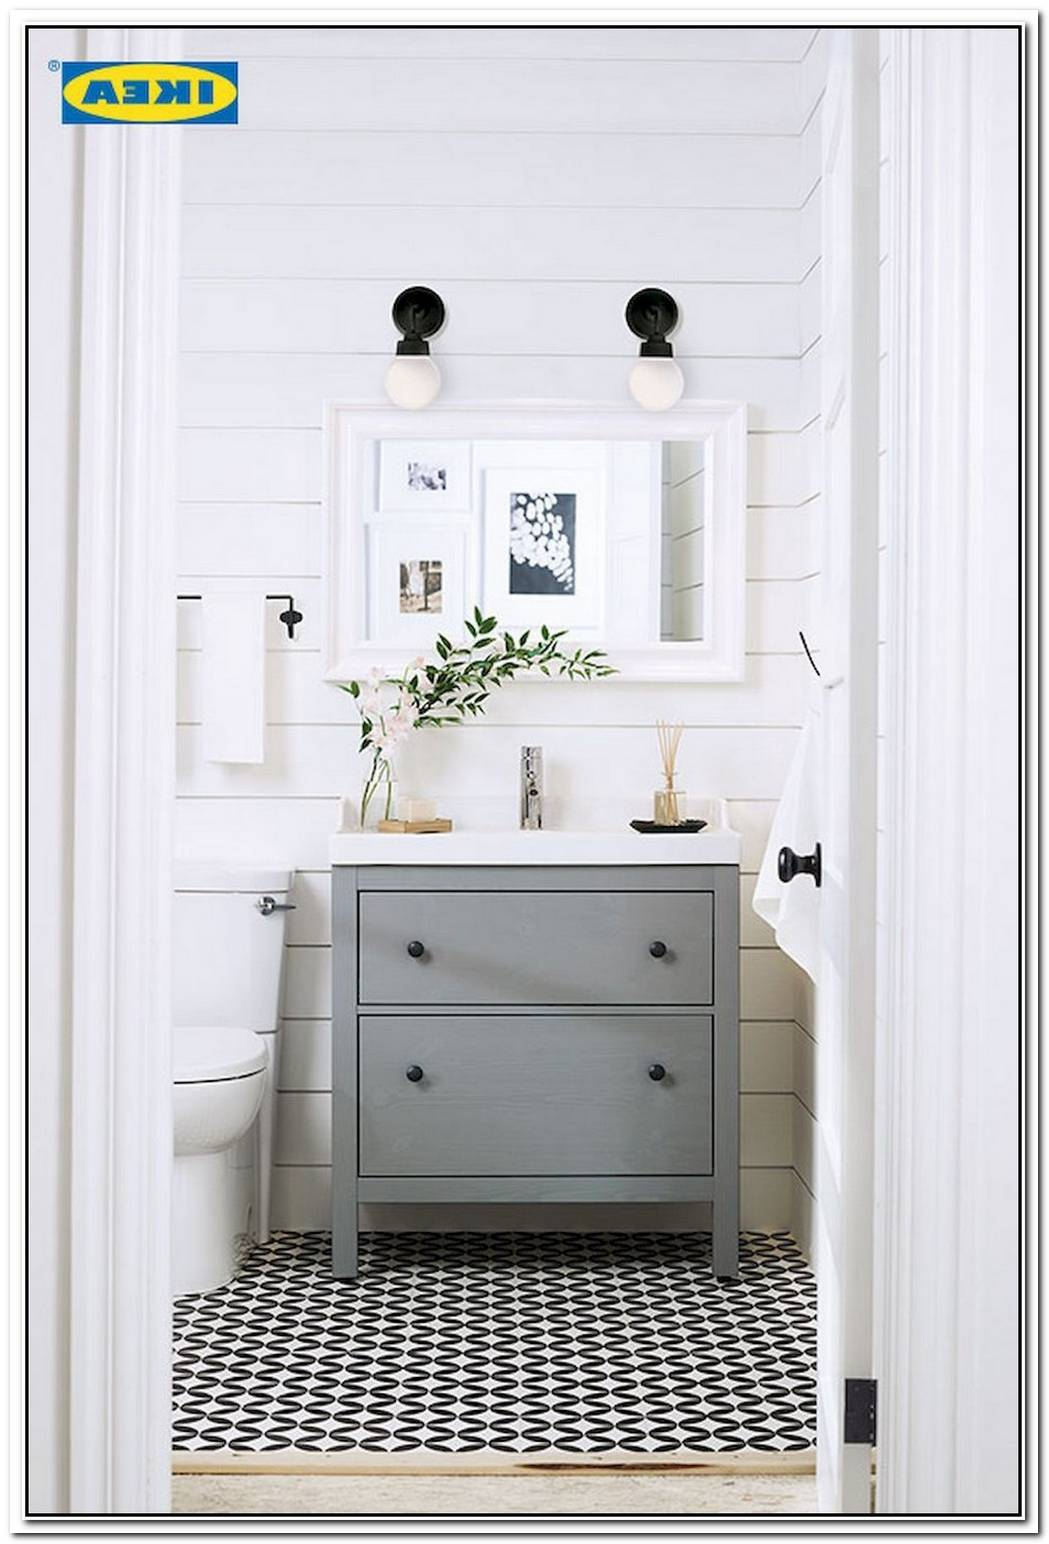 Bathroom Farmhouse Powder Room Ideas